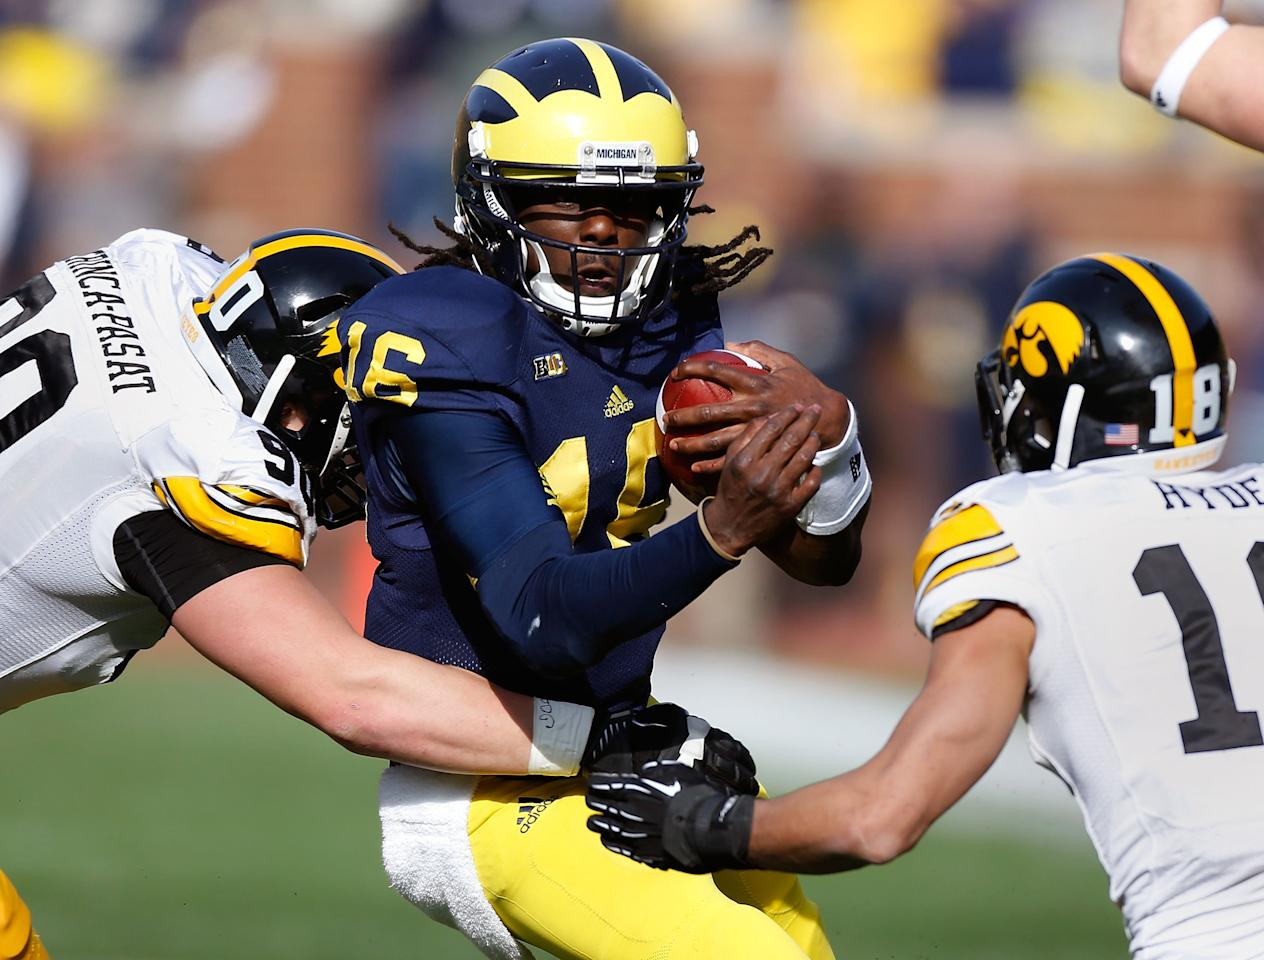 ANN ARBOR, MI - NOVEMBER 17:  Denard Robinson #16 of the Michigan Wolverines tries to split the tackles of Louis Trinca-Pasat #90 and Micah Hyde #18 of the Iowa Hawkeyes at Michigan Stadium on November 17, 2012 in Ann Arbor, Michigan. (Photo by Gregory Shamus/Getty Images)